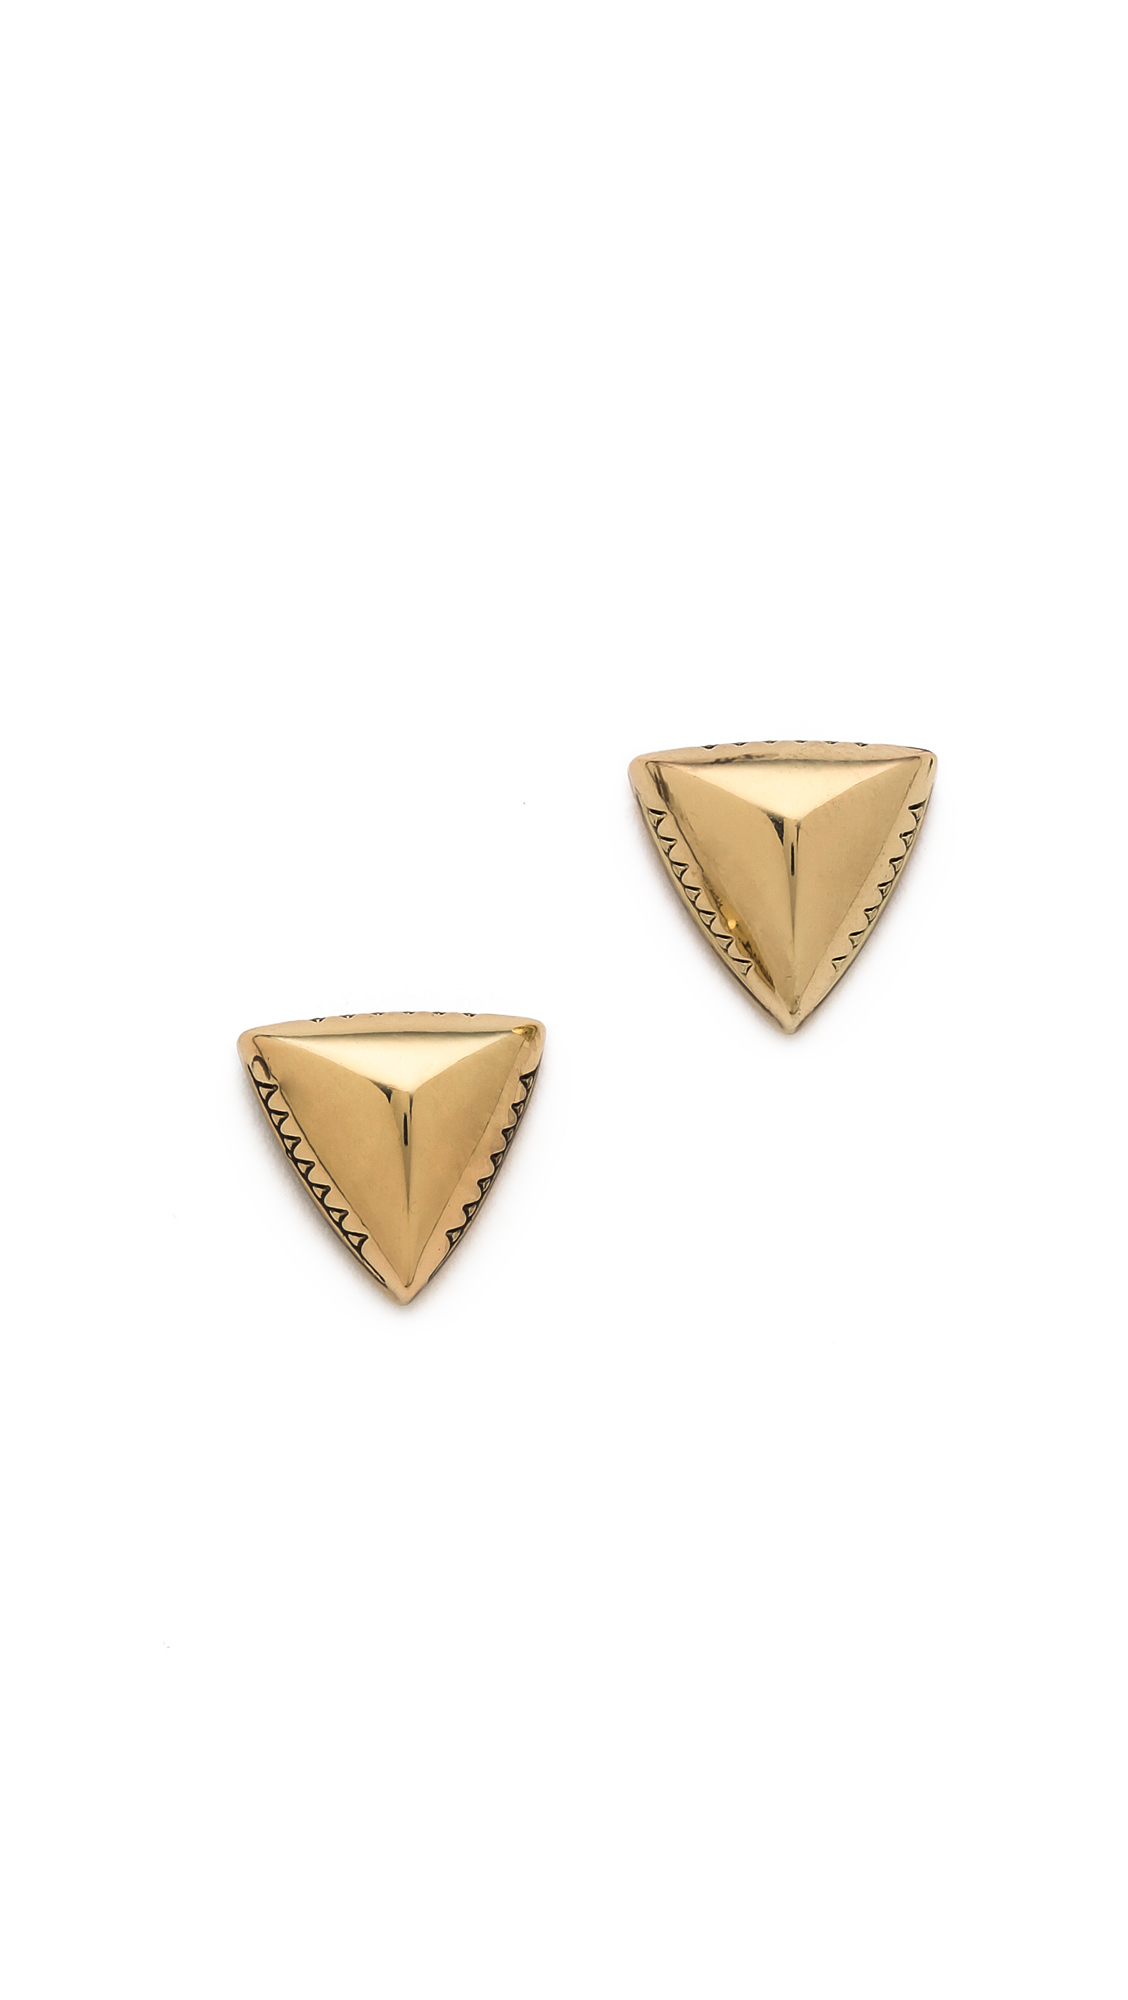 pyramid jewelry geometric earrings diamond ben bridge jacket stud with